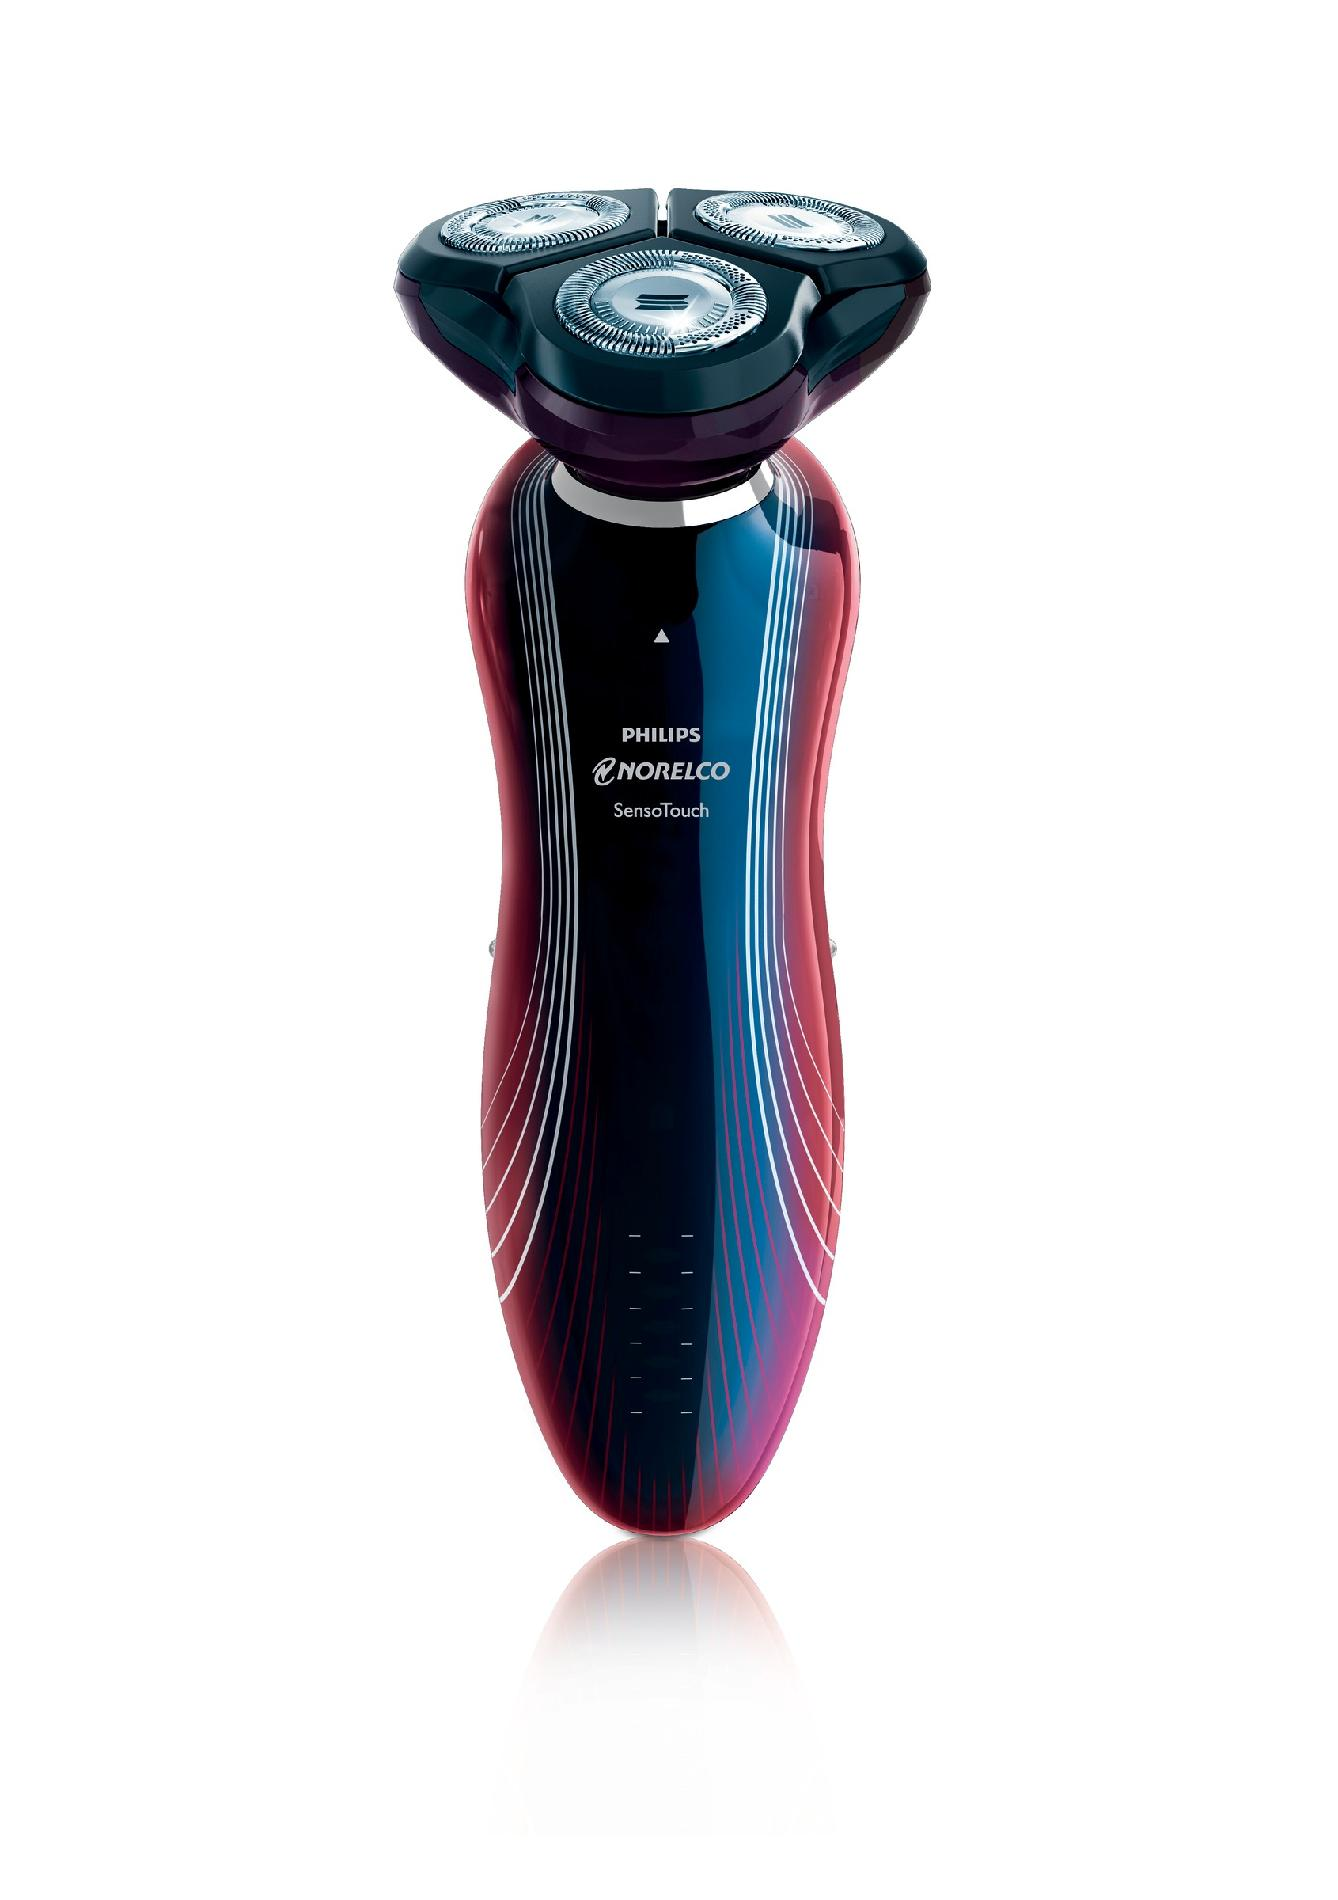 Philips Norelco 1180X SensoTouch Shaver